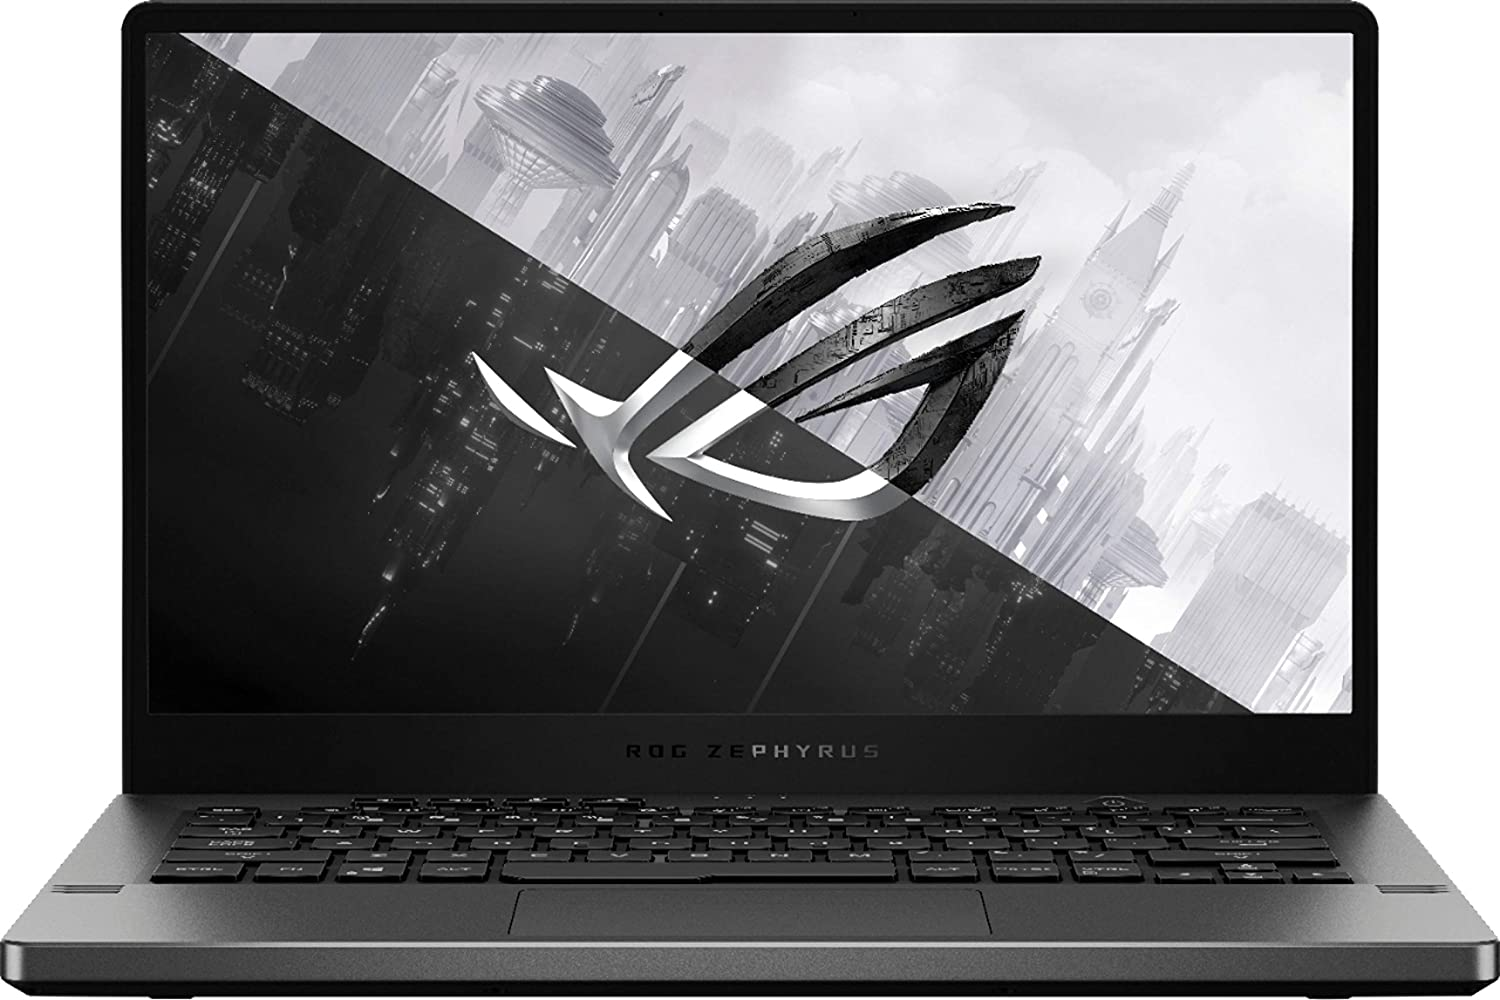 "2020 ASUS ROG Zephyrus G14 14"" VR Ready FHD Gaming Laptop,8 cores AMD Ryzen 7 4800HS(Upto 4.2 GHzBeat i7-10750H),Backlight,HDMI,USB C,NVIDIA GeForce GTX 1650,Gray,Win 10 (16GB RAM